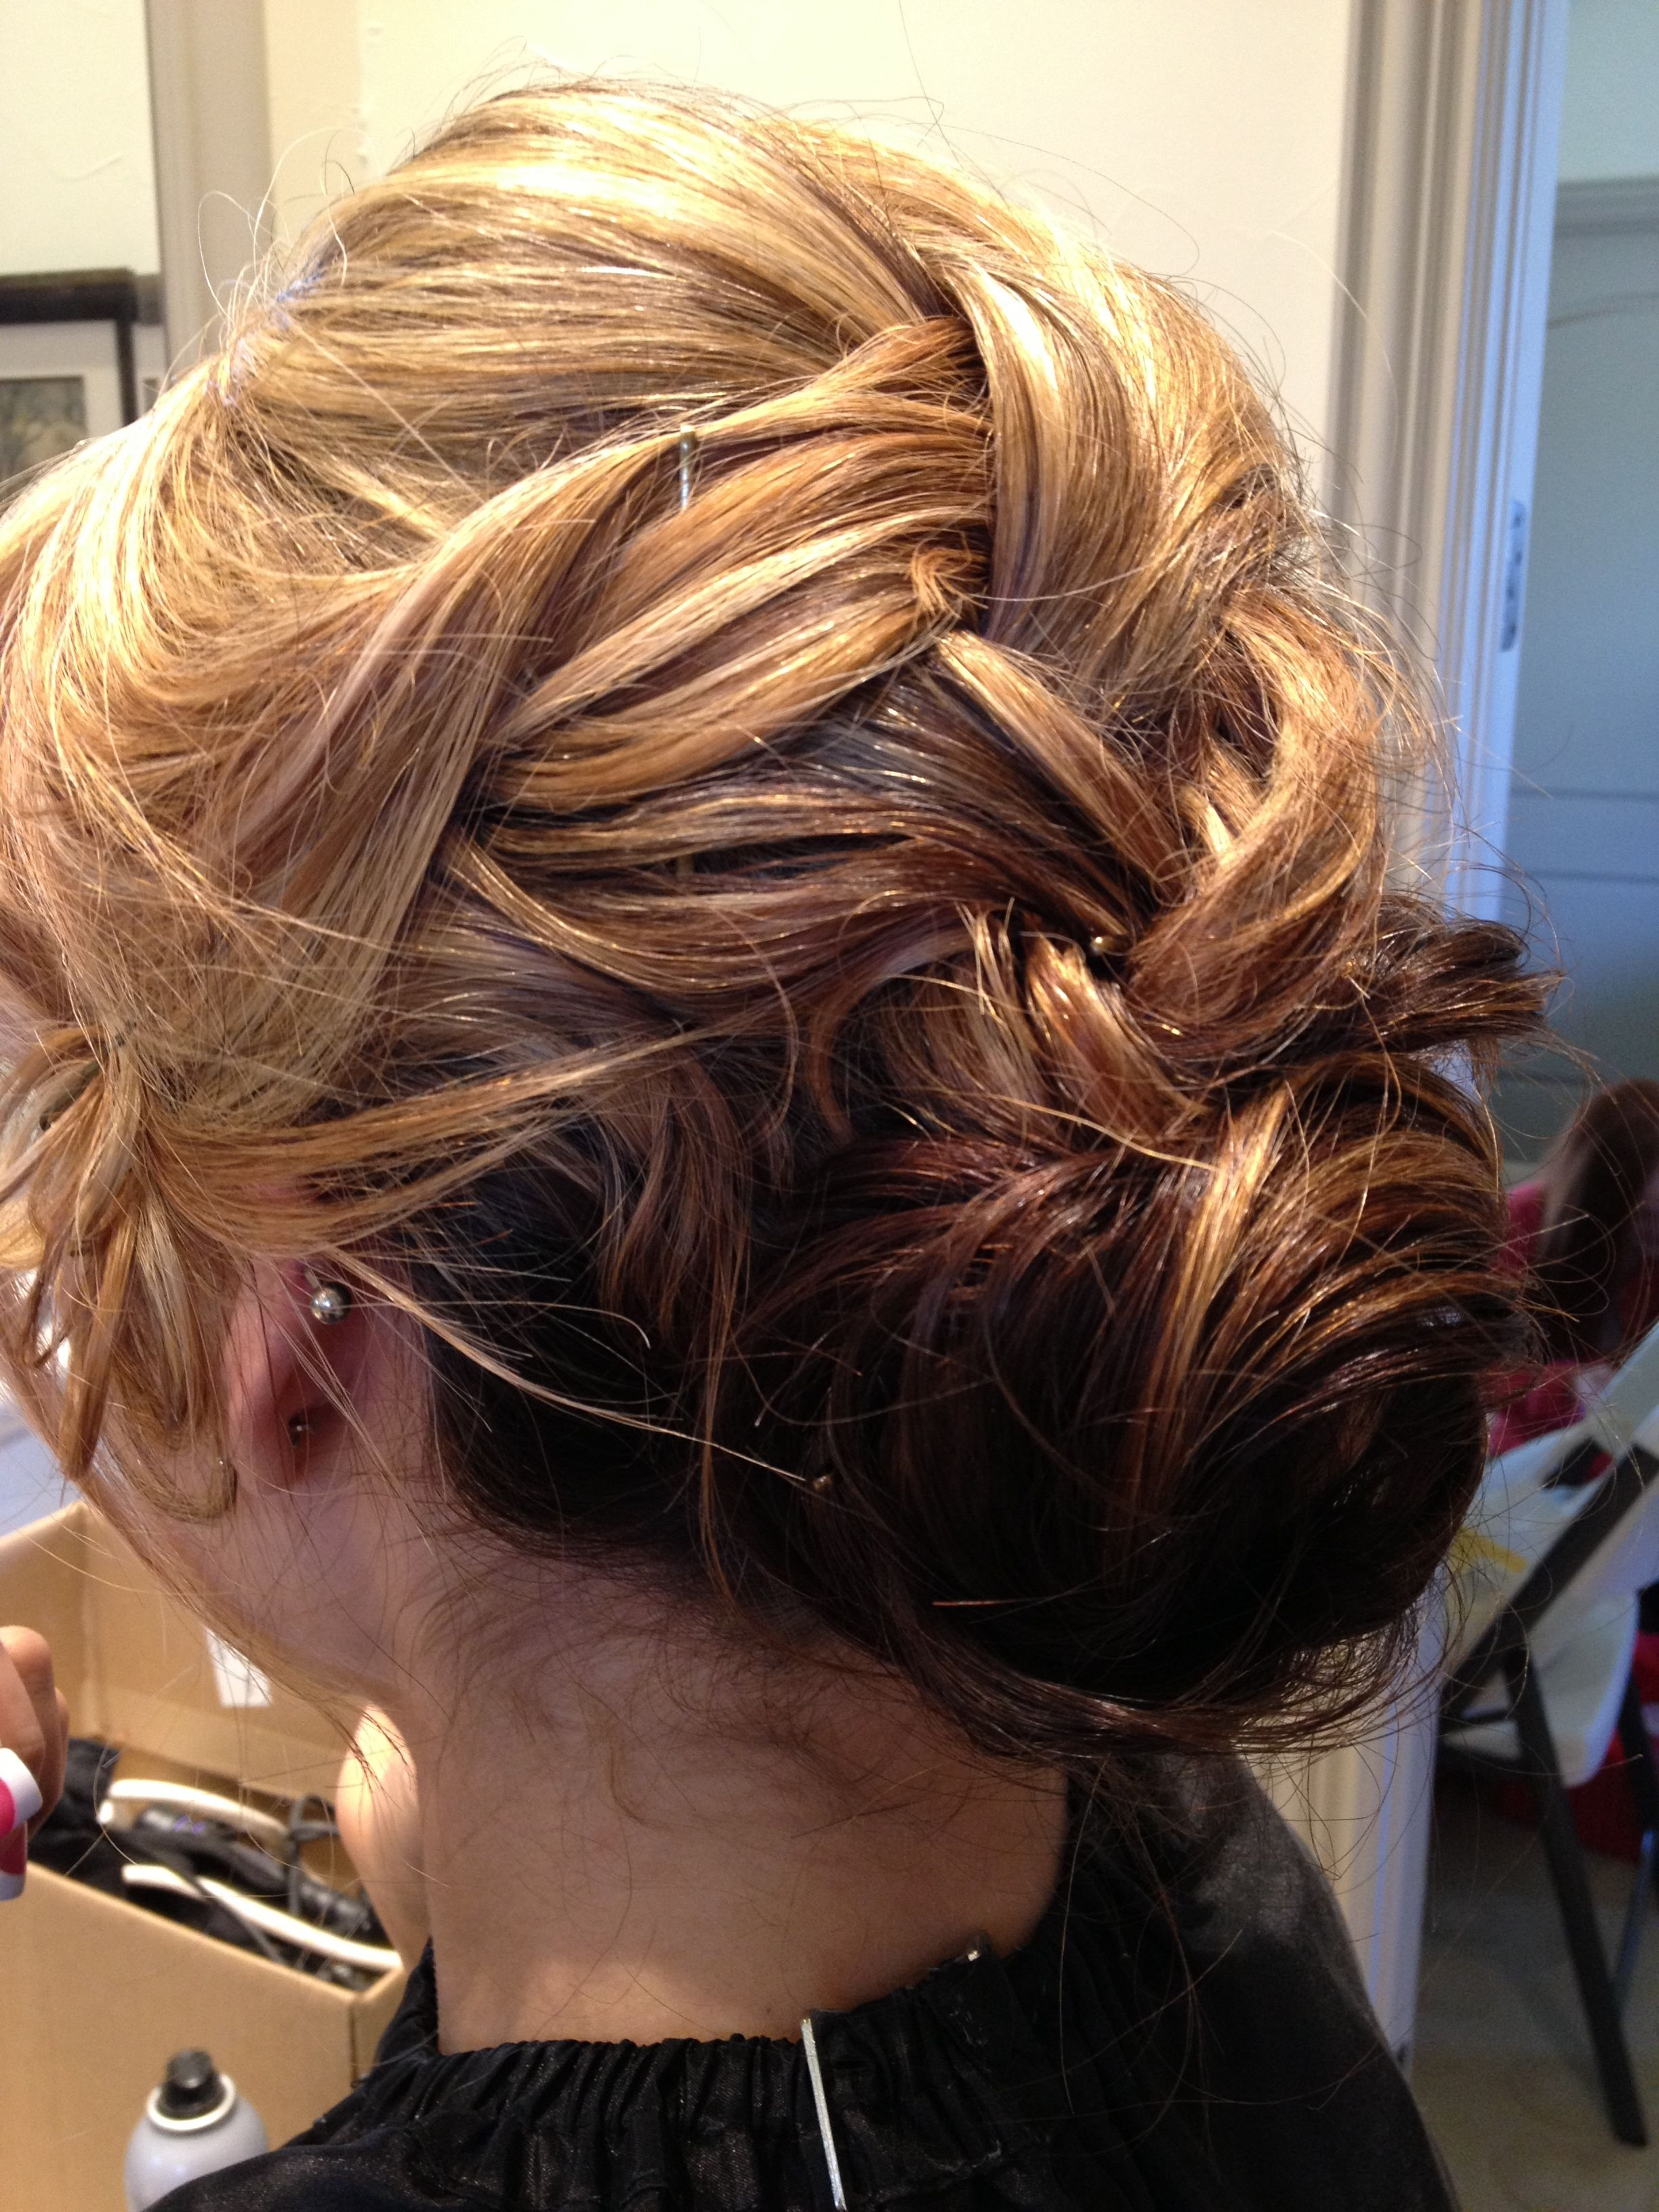 Hairstyles : Monica Hairstyle Loose French Braid Into Low Bun Inside Newest Volumized Low Chignon Prom Hairstyles (Gallery 20 of 20)